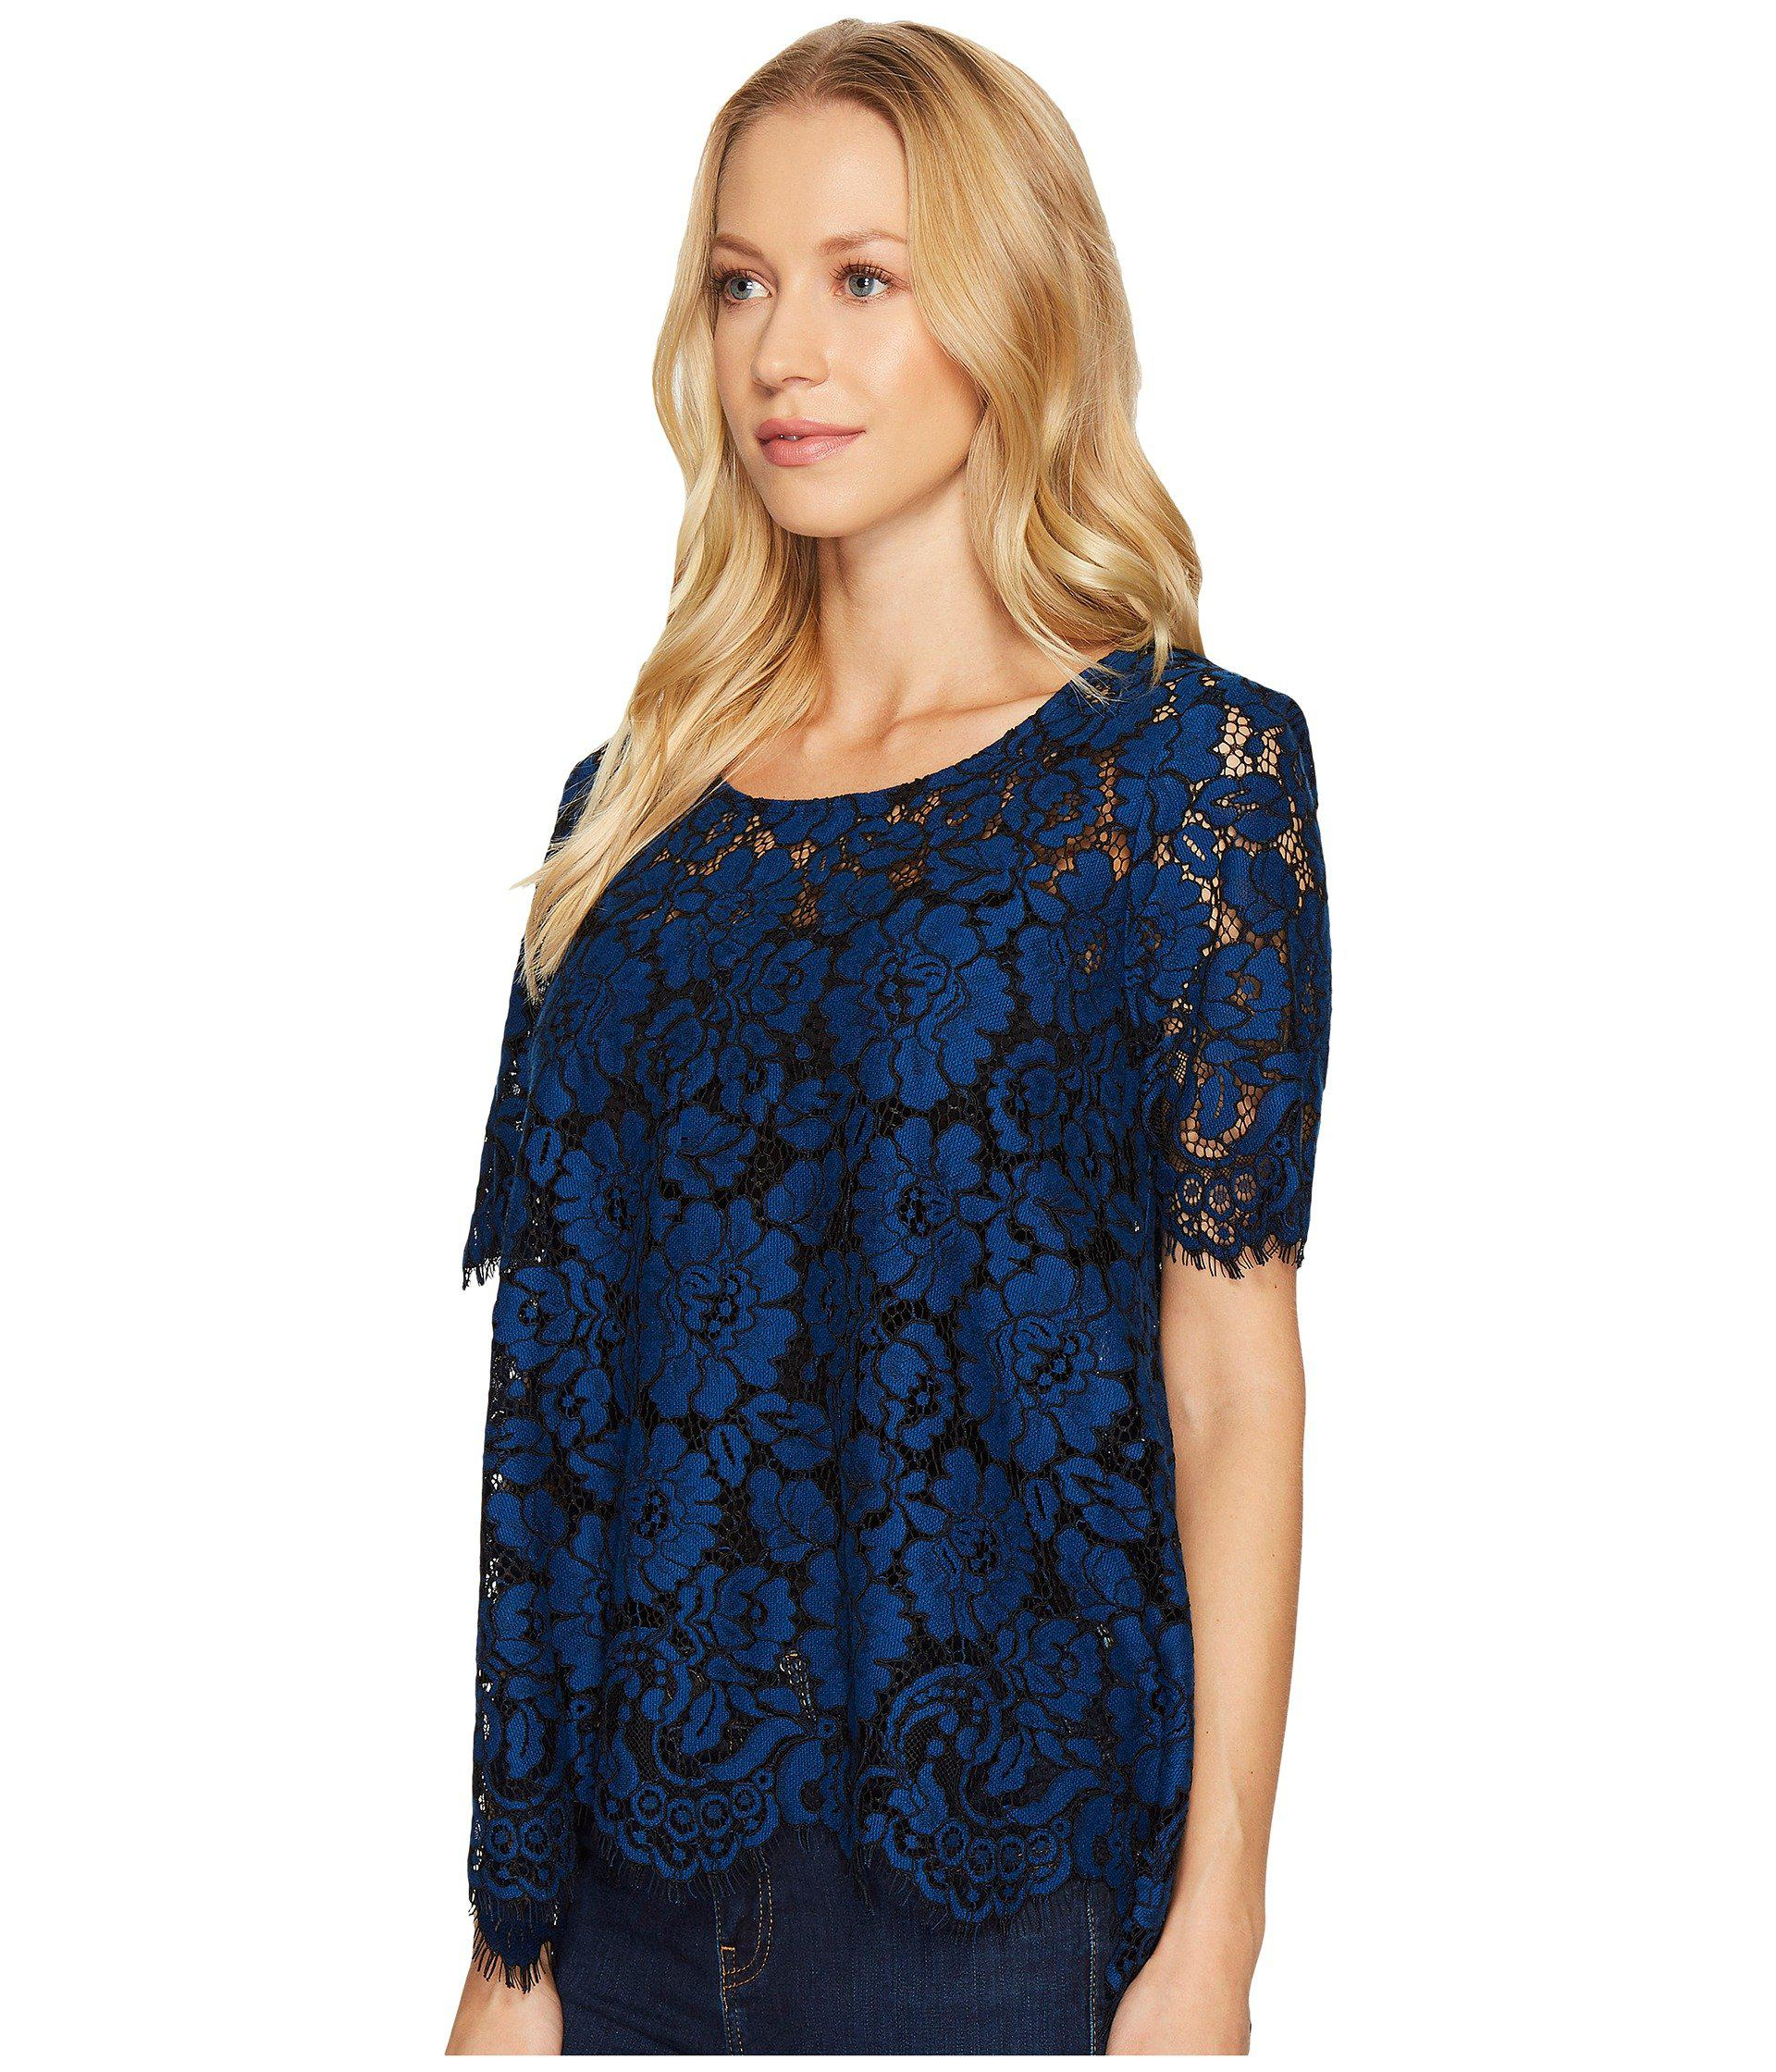 17cdb51b31a23 Lyst - Karen Kane Flare Lace Top in Blue - Save 62%